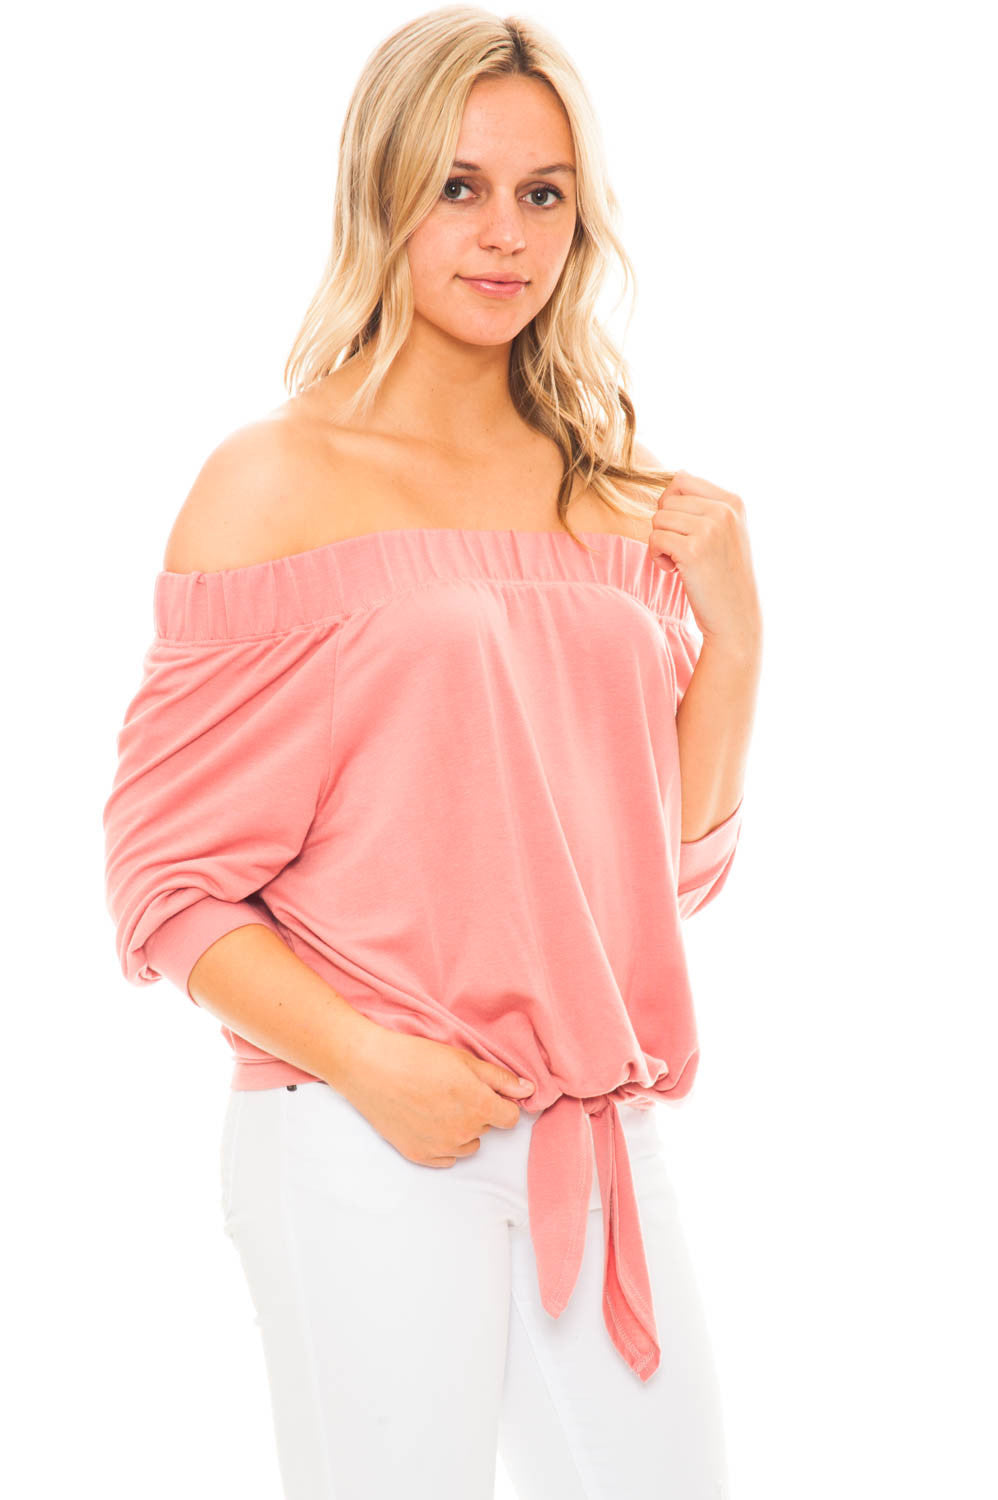 Blouse - Off Shoulder 3/4 Sleeve Top With Tie